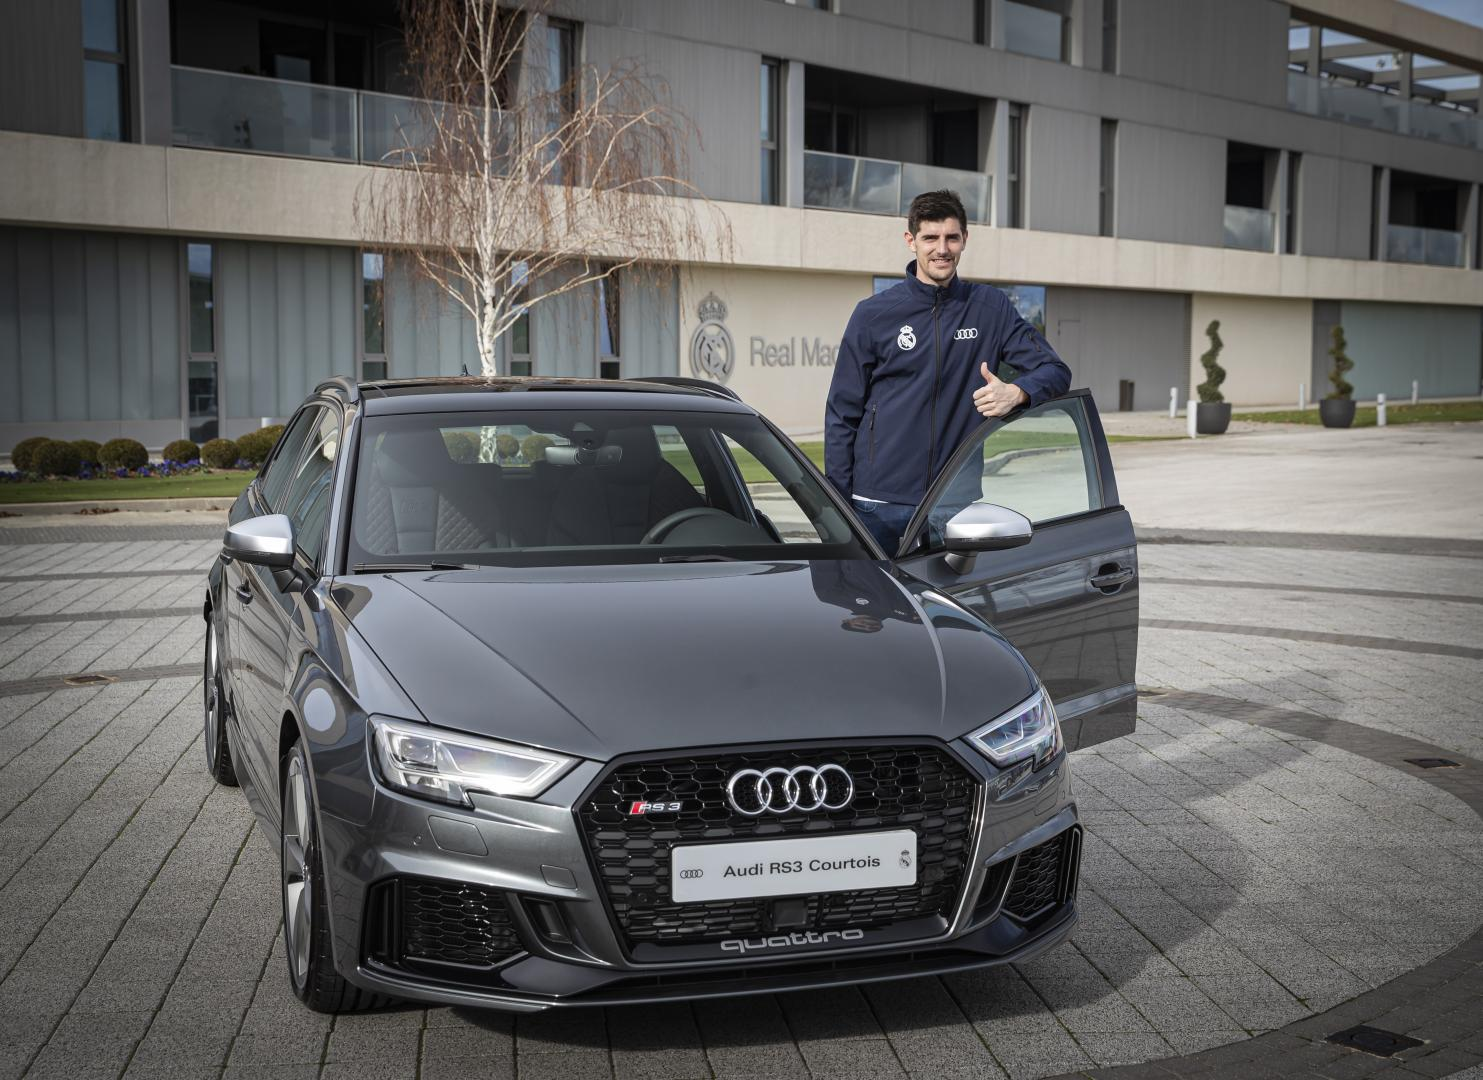 Real Madrid Audi RS3 Courtois